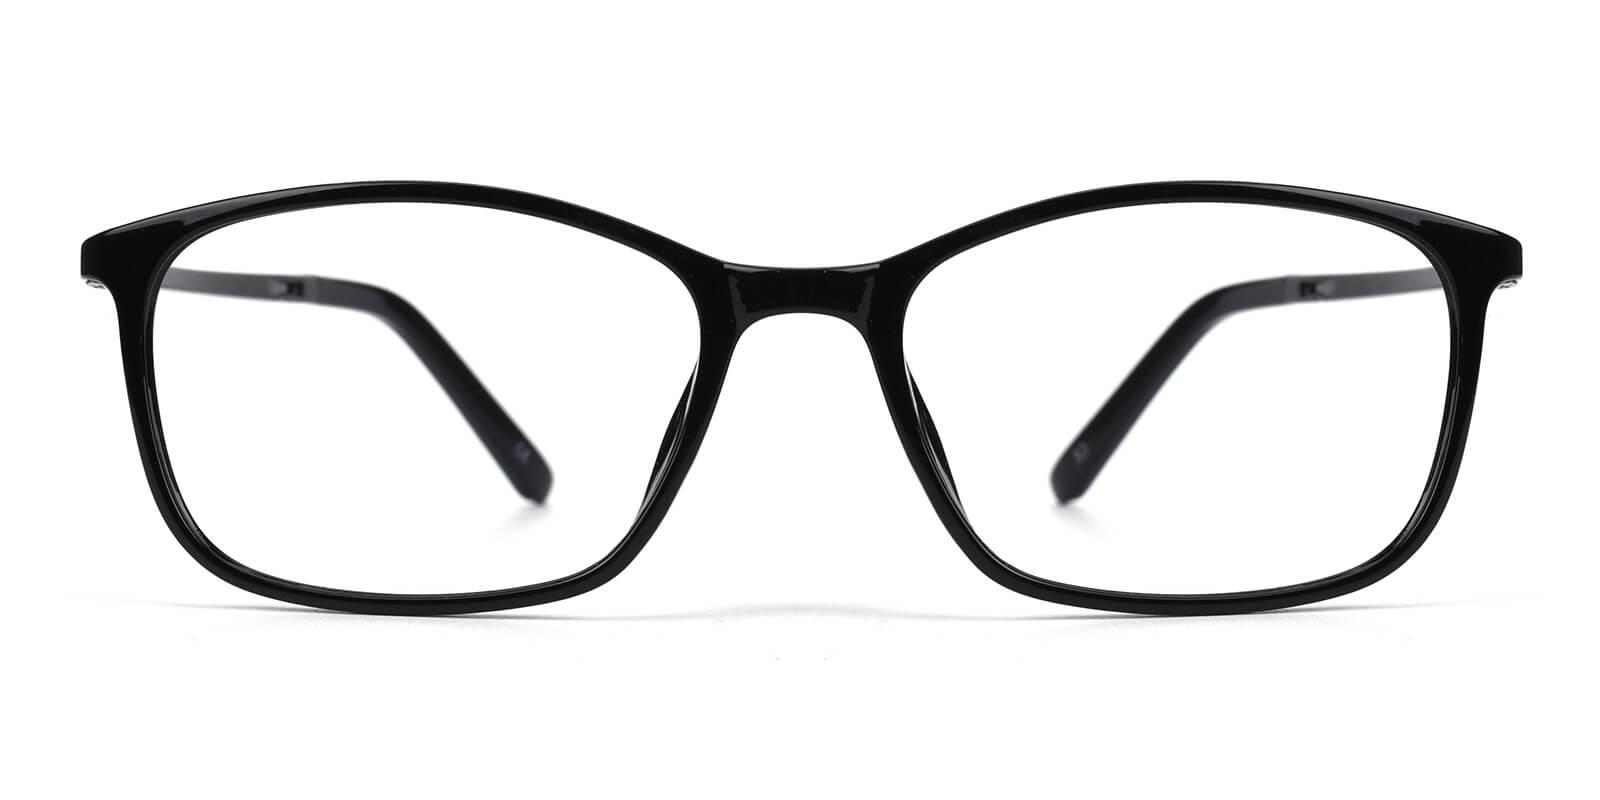 Jerry-Black-Square-TR-Eyeglasses-additional2